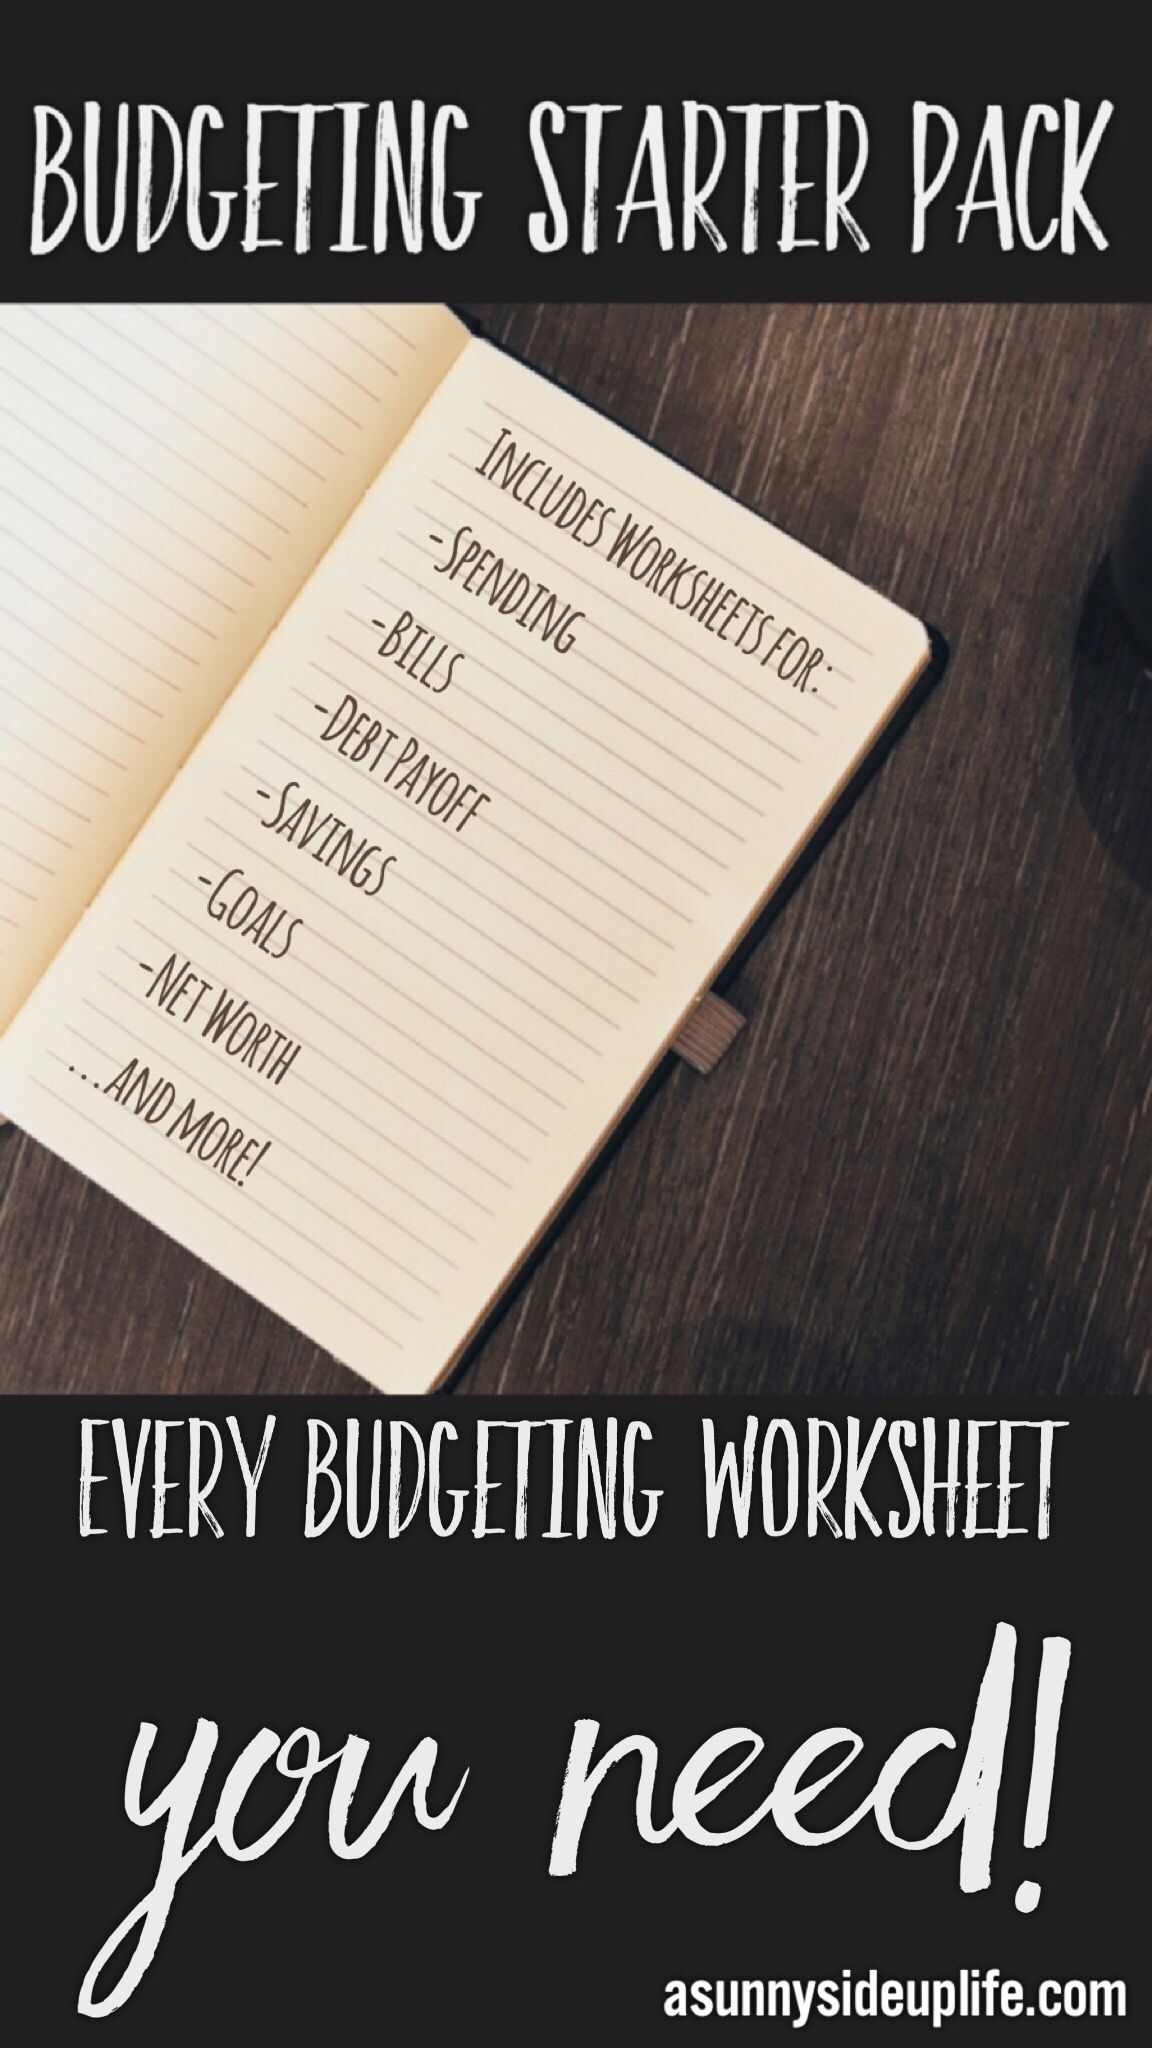 This Budgeting Starter Pack Is Perfect For Everyone